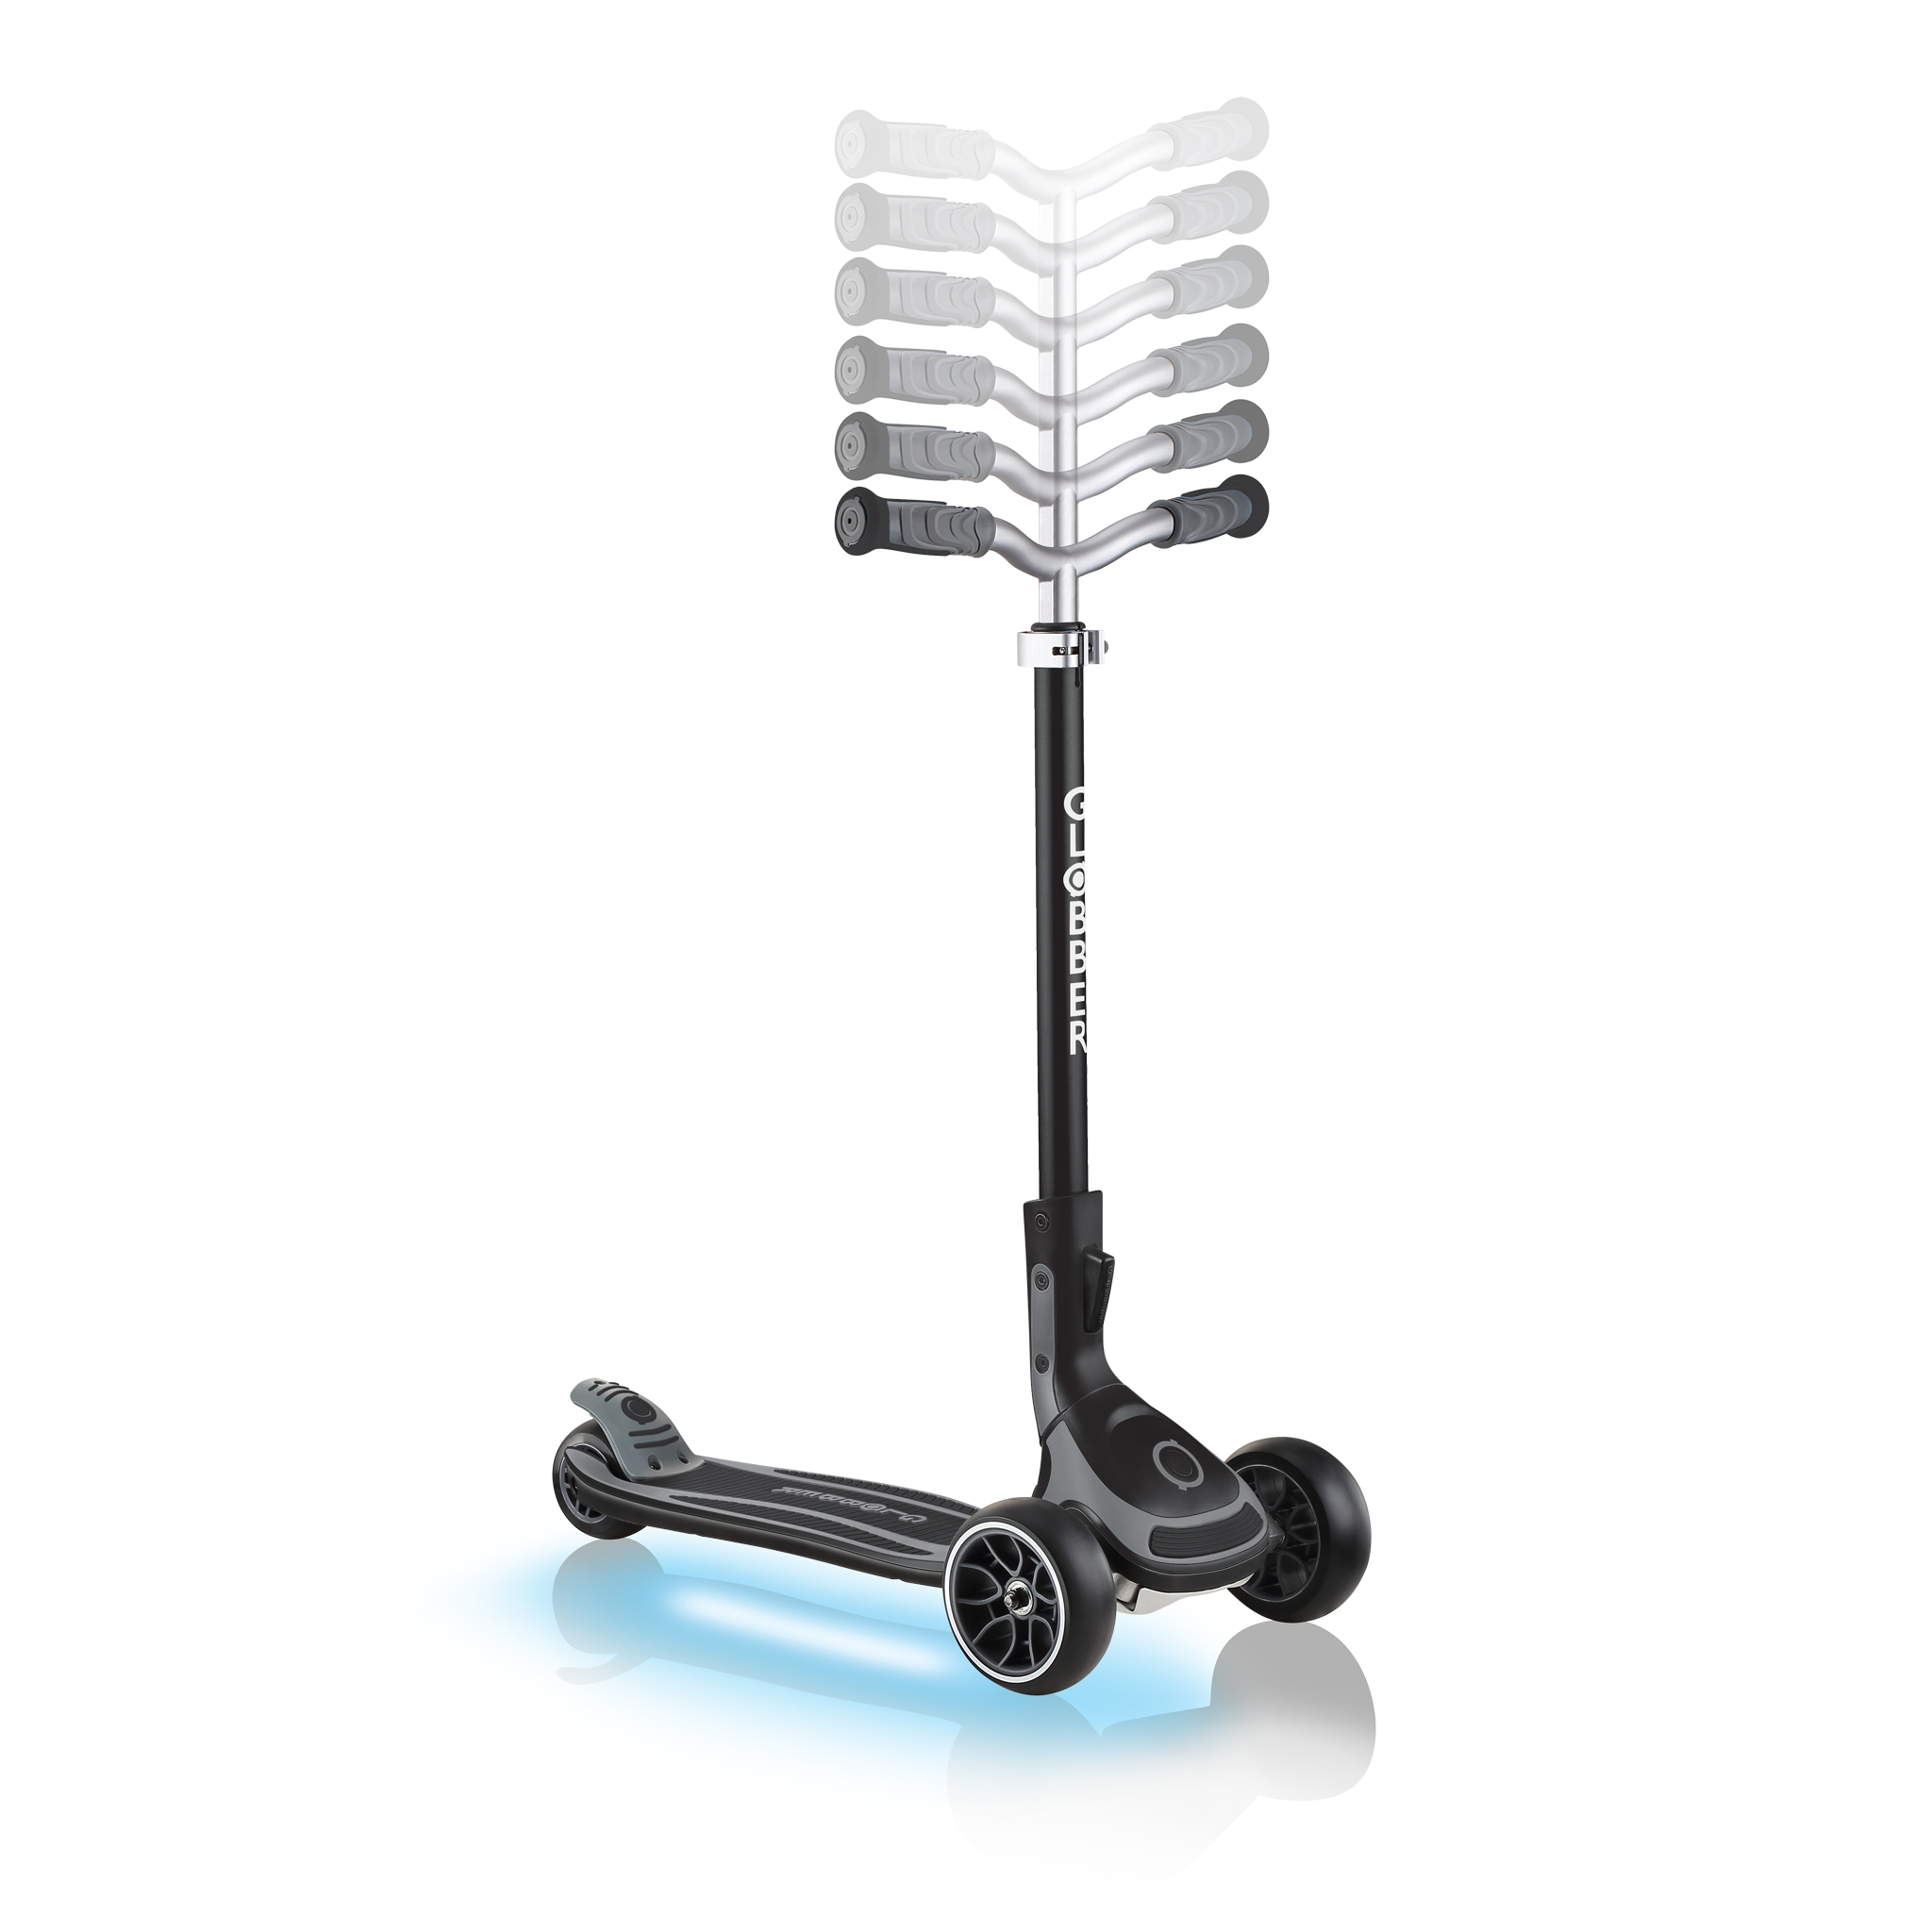 ULTIMUM-LIGHTS-adjustable-scooter-for-kids-and-teens-black